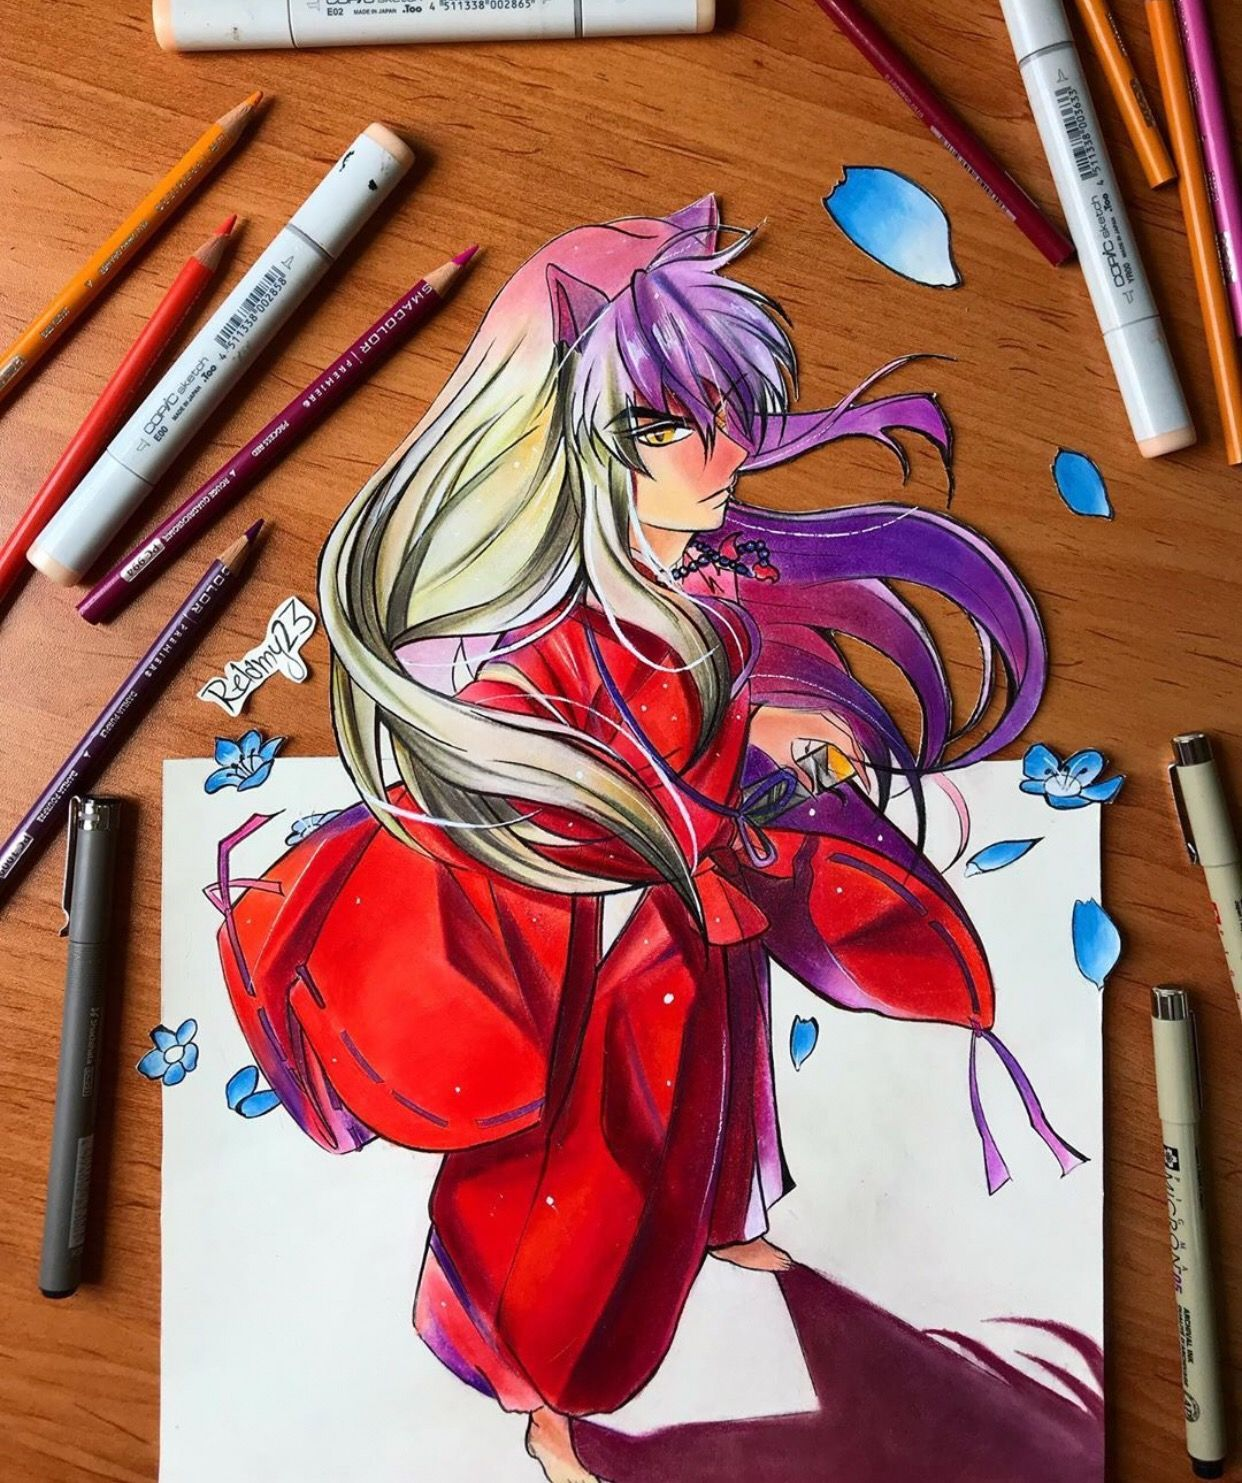 Inuyasha By Relamy23 Visit Our Website For More Anime And Animeart Manga Kagome Don T Forget To Follow Our Boards F Anime Artwork Anime Art